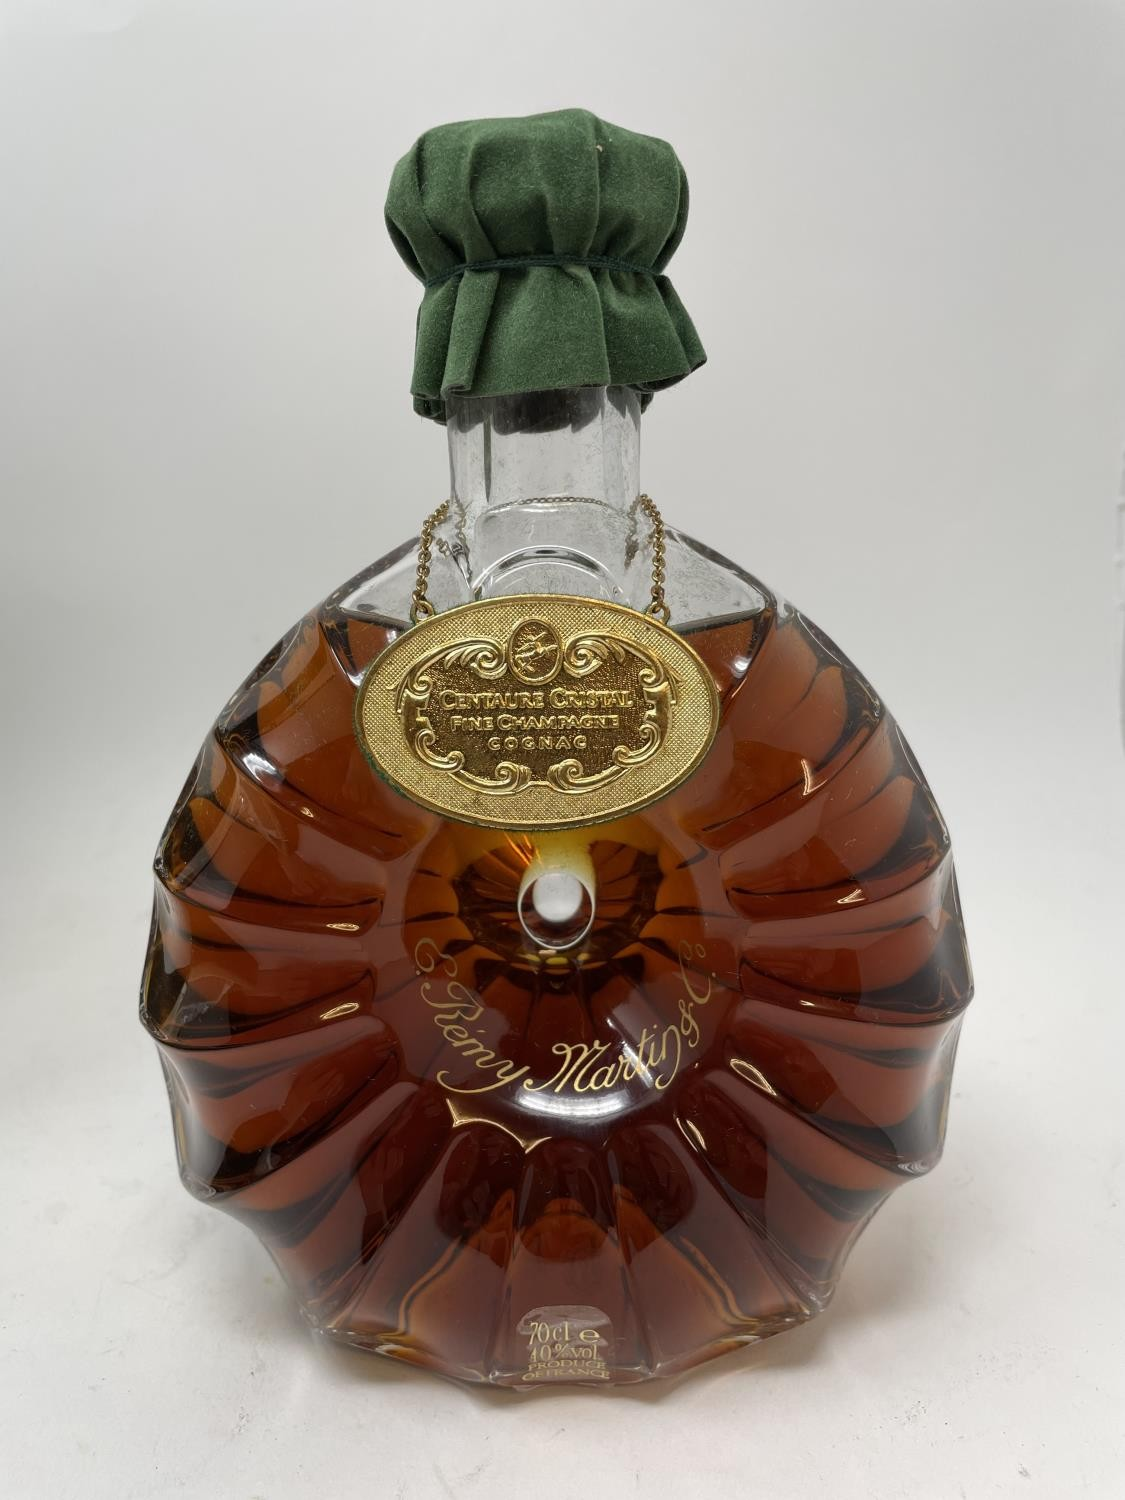 A 70 cl bottle of Remy Martin Cognac, in a Baccarat decanter bottled 27 October 1986, with